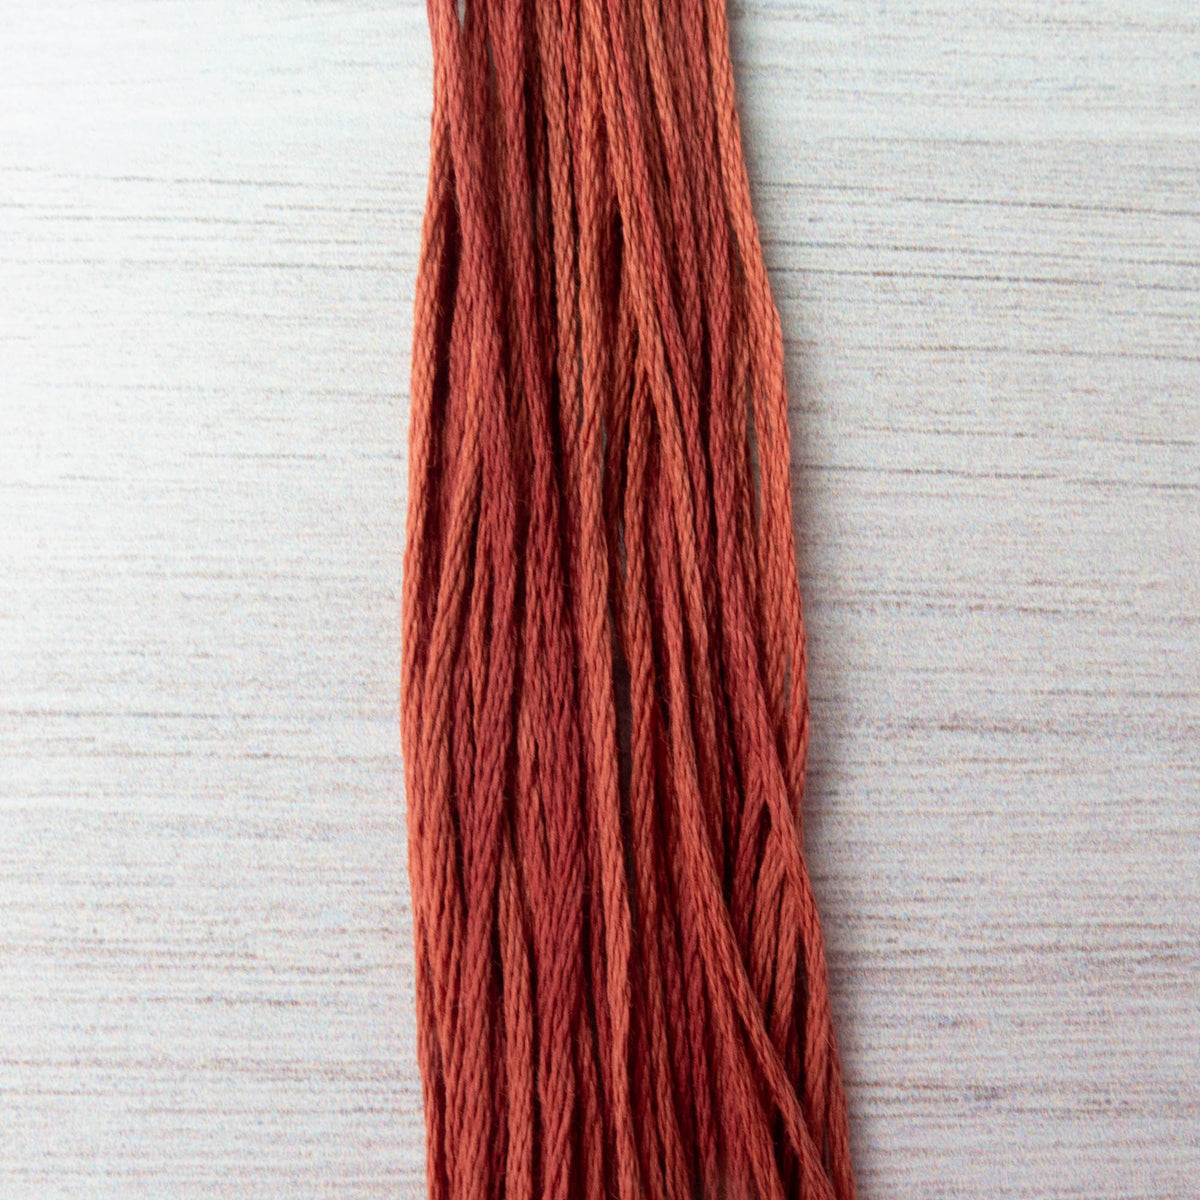 Weeks Dye Works Hand Over Dyed Embroidery Floss - Carolina Clay (2239a) Floss - Snuggly Monkey